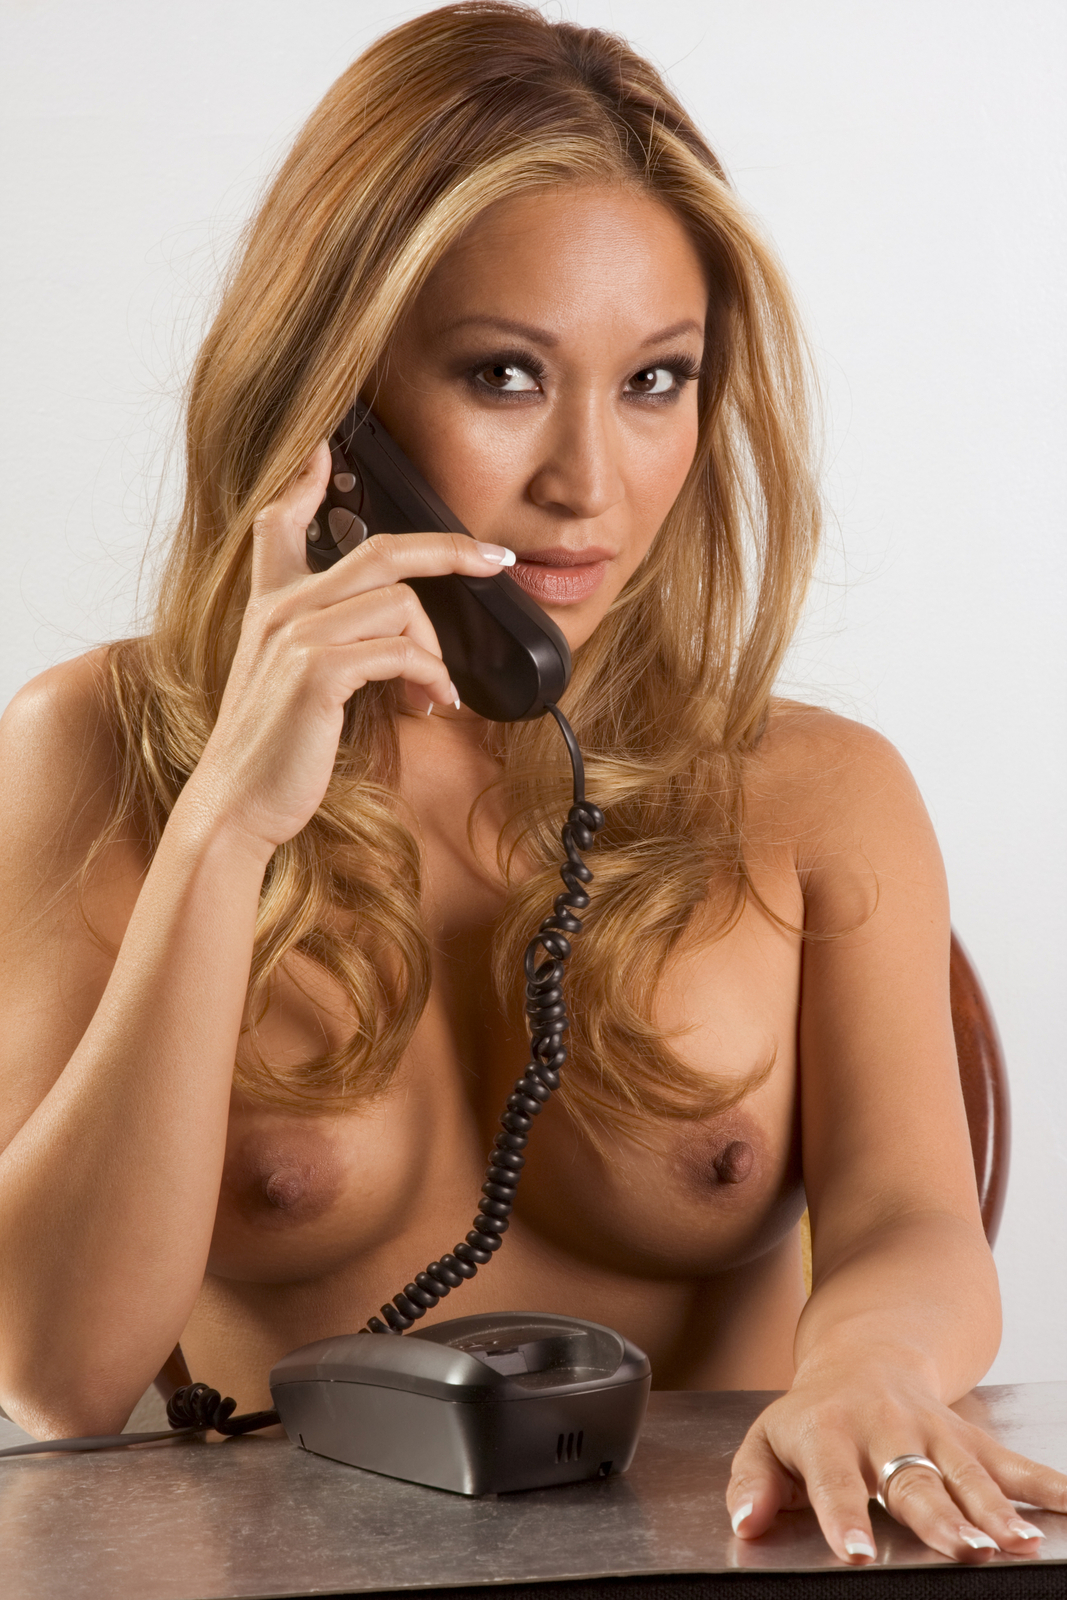 Sexy topless woman talking on the phone